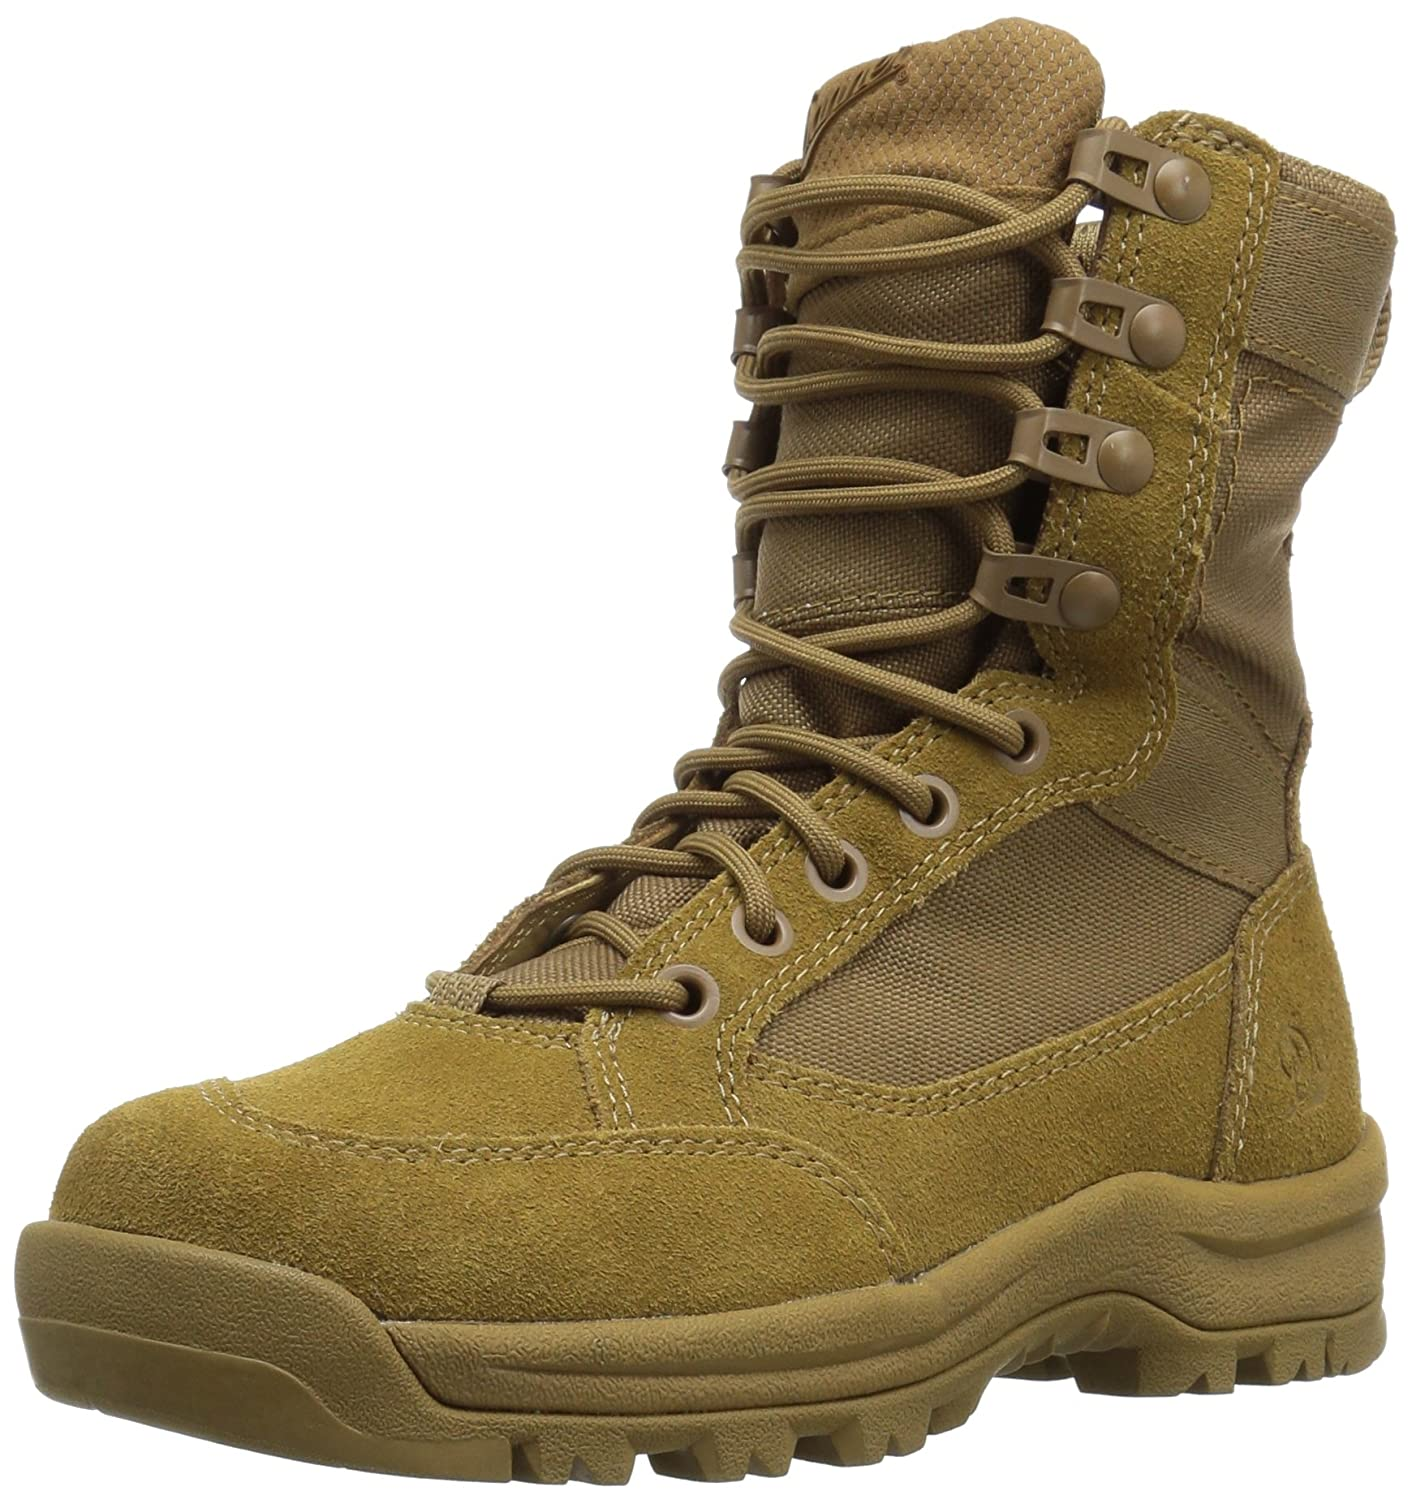 Men's Coyote Danner Tanicus Boots Review – Tactical Footwear recommend